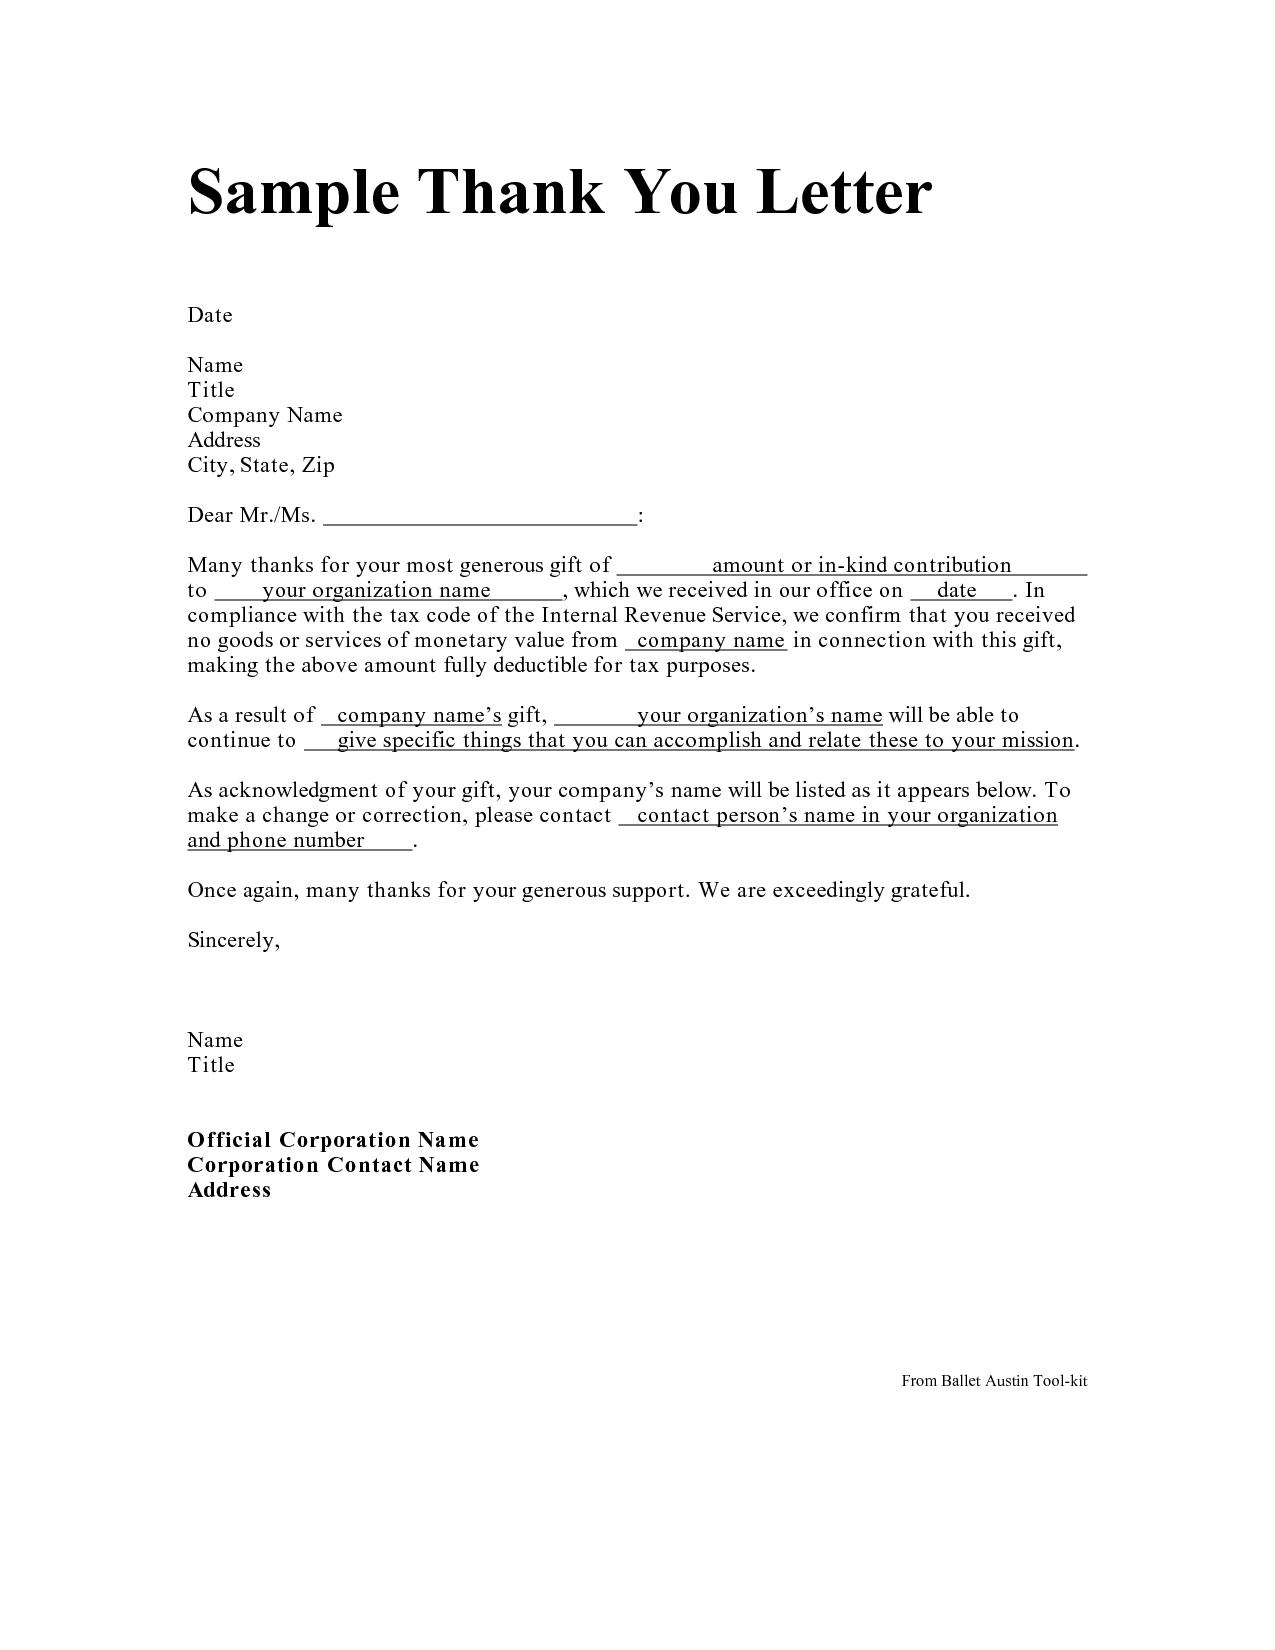 Mission Trip Donation Letter Template - Personal Thank You Letter Personal Thank You Letter Samples